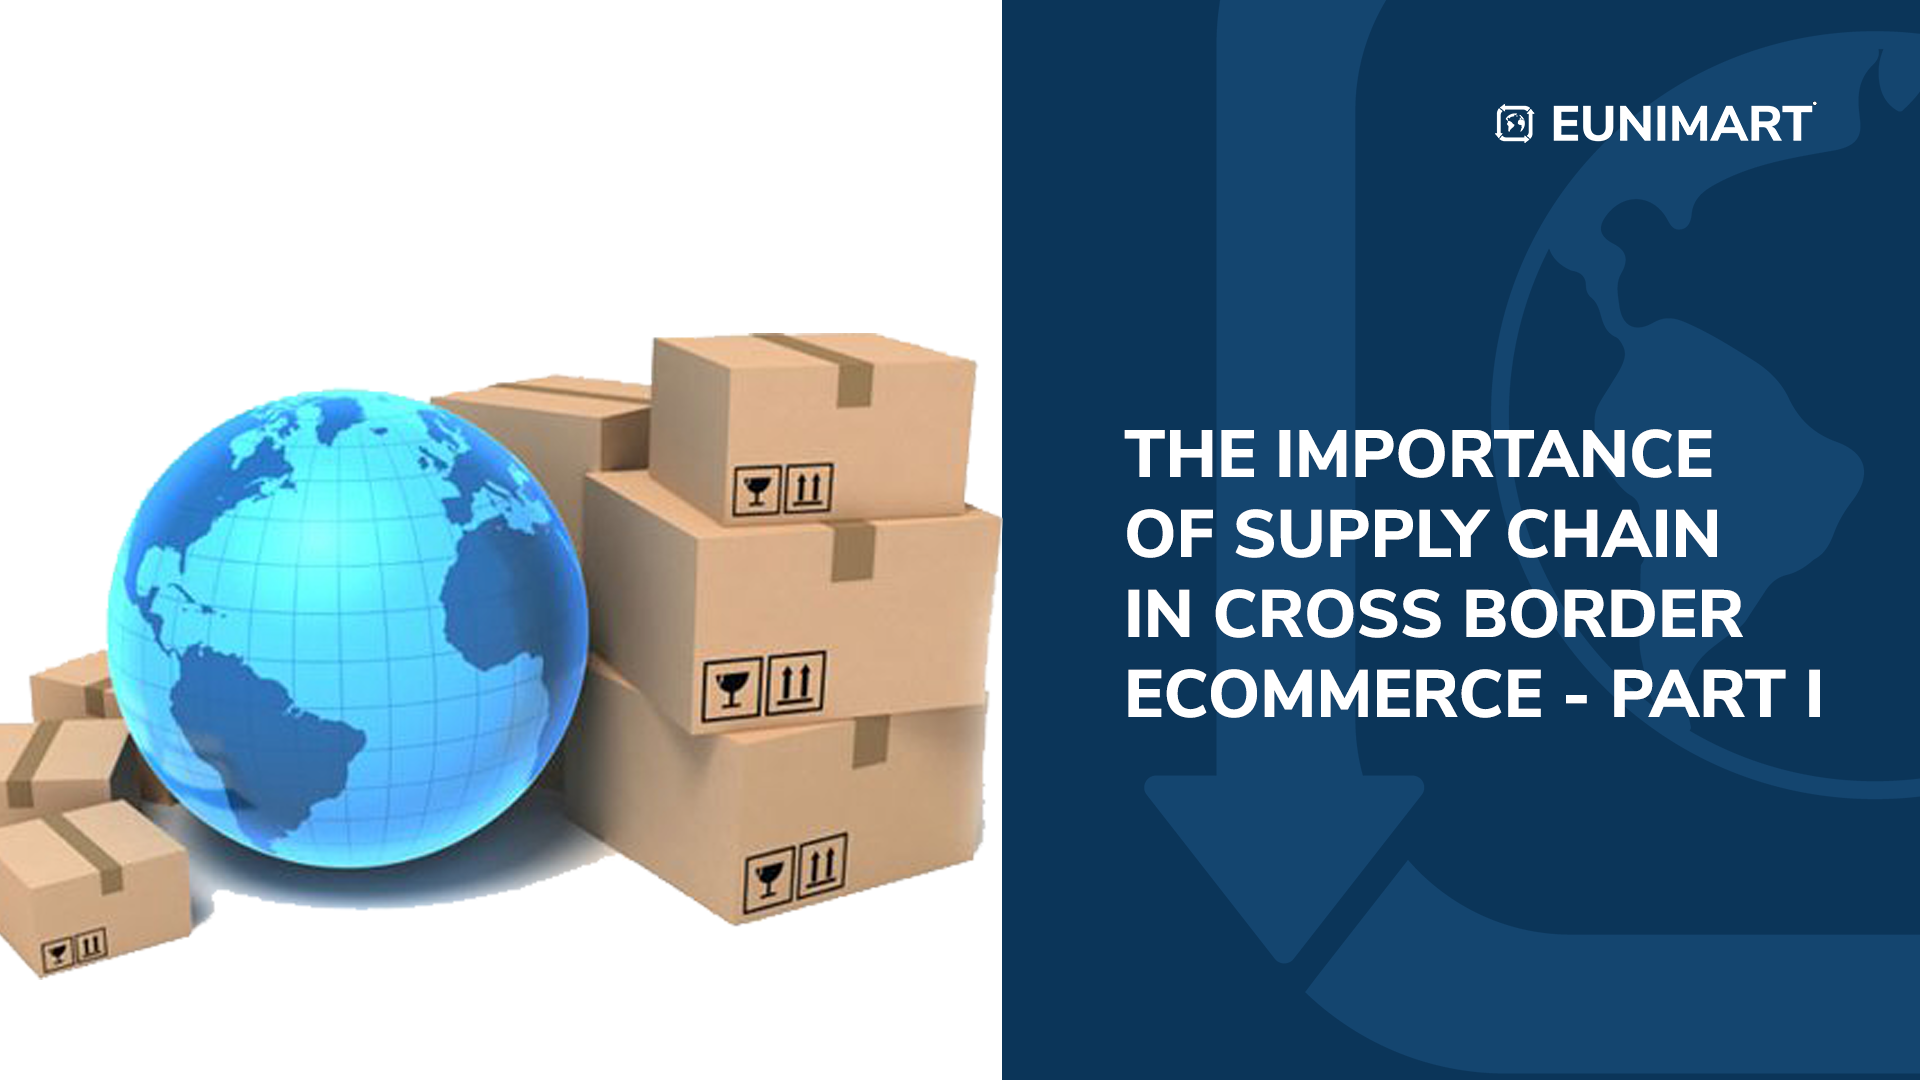 The Importance of Supply Chain in Cross Border Ecommerce – Part I